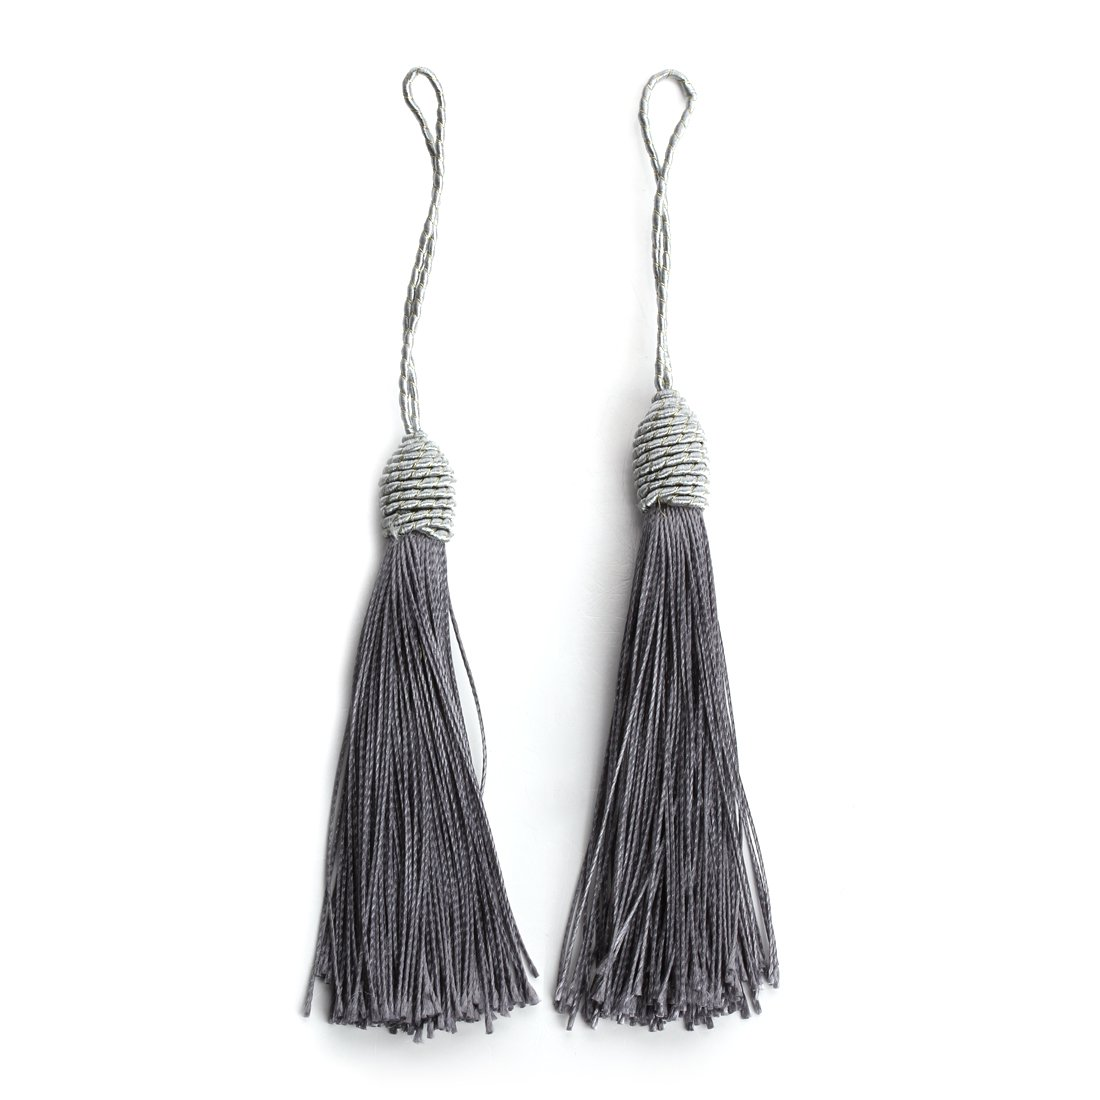 Linsoir Beads Black Long Silk Tassels 6 Inches Bohemian Style Tassel for Jewelry Making DIY Fashion Supplier 10 pcs/lot F4000BK00